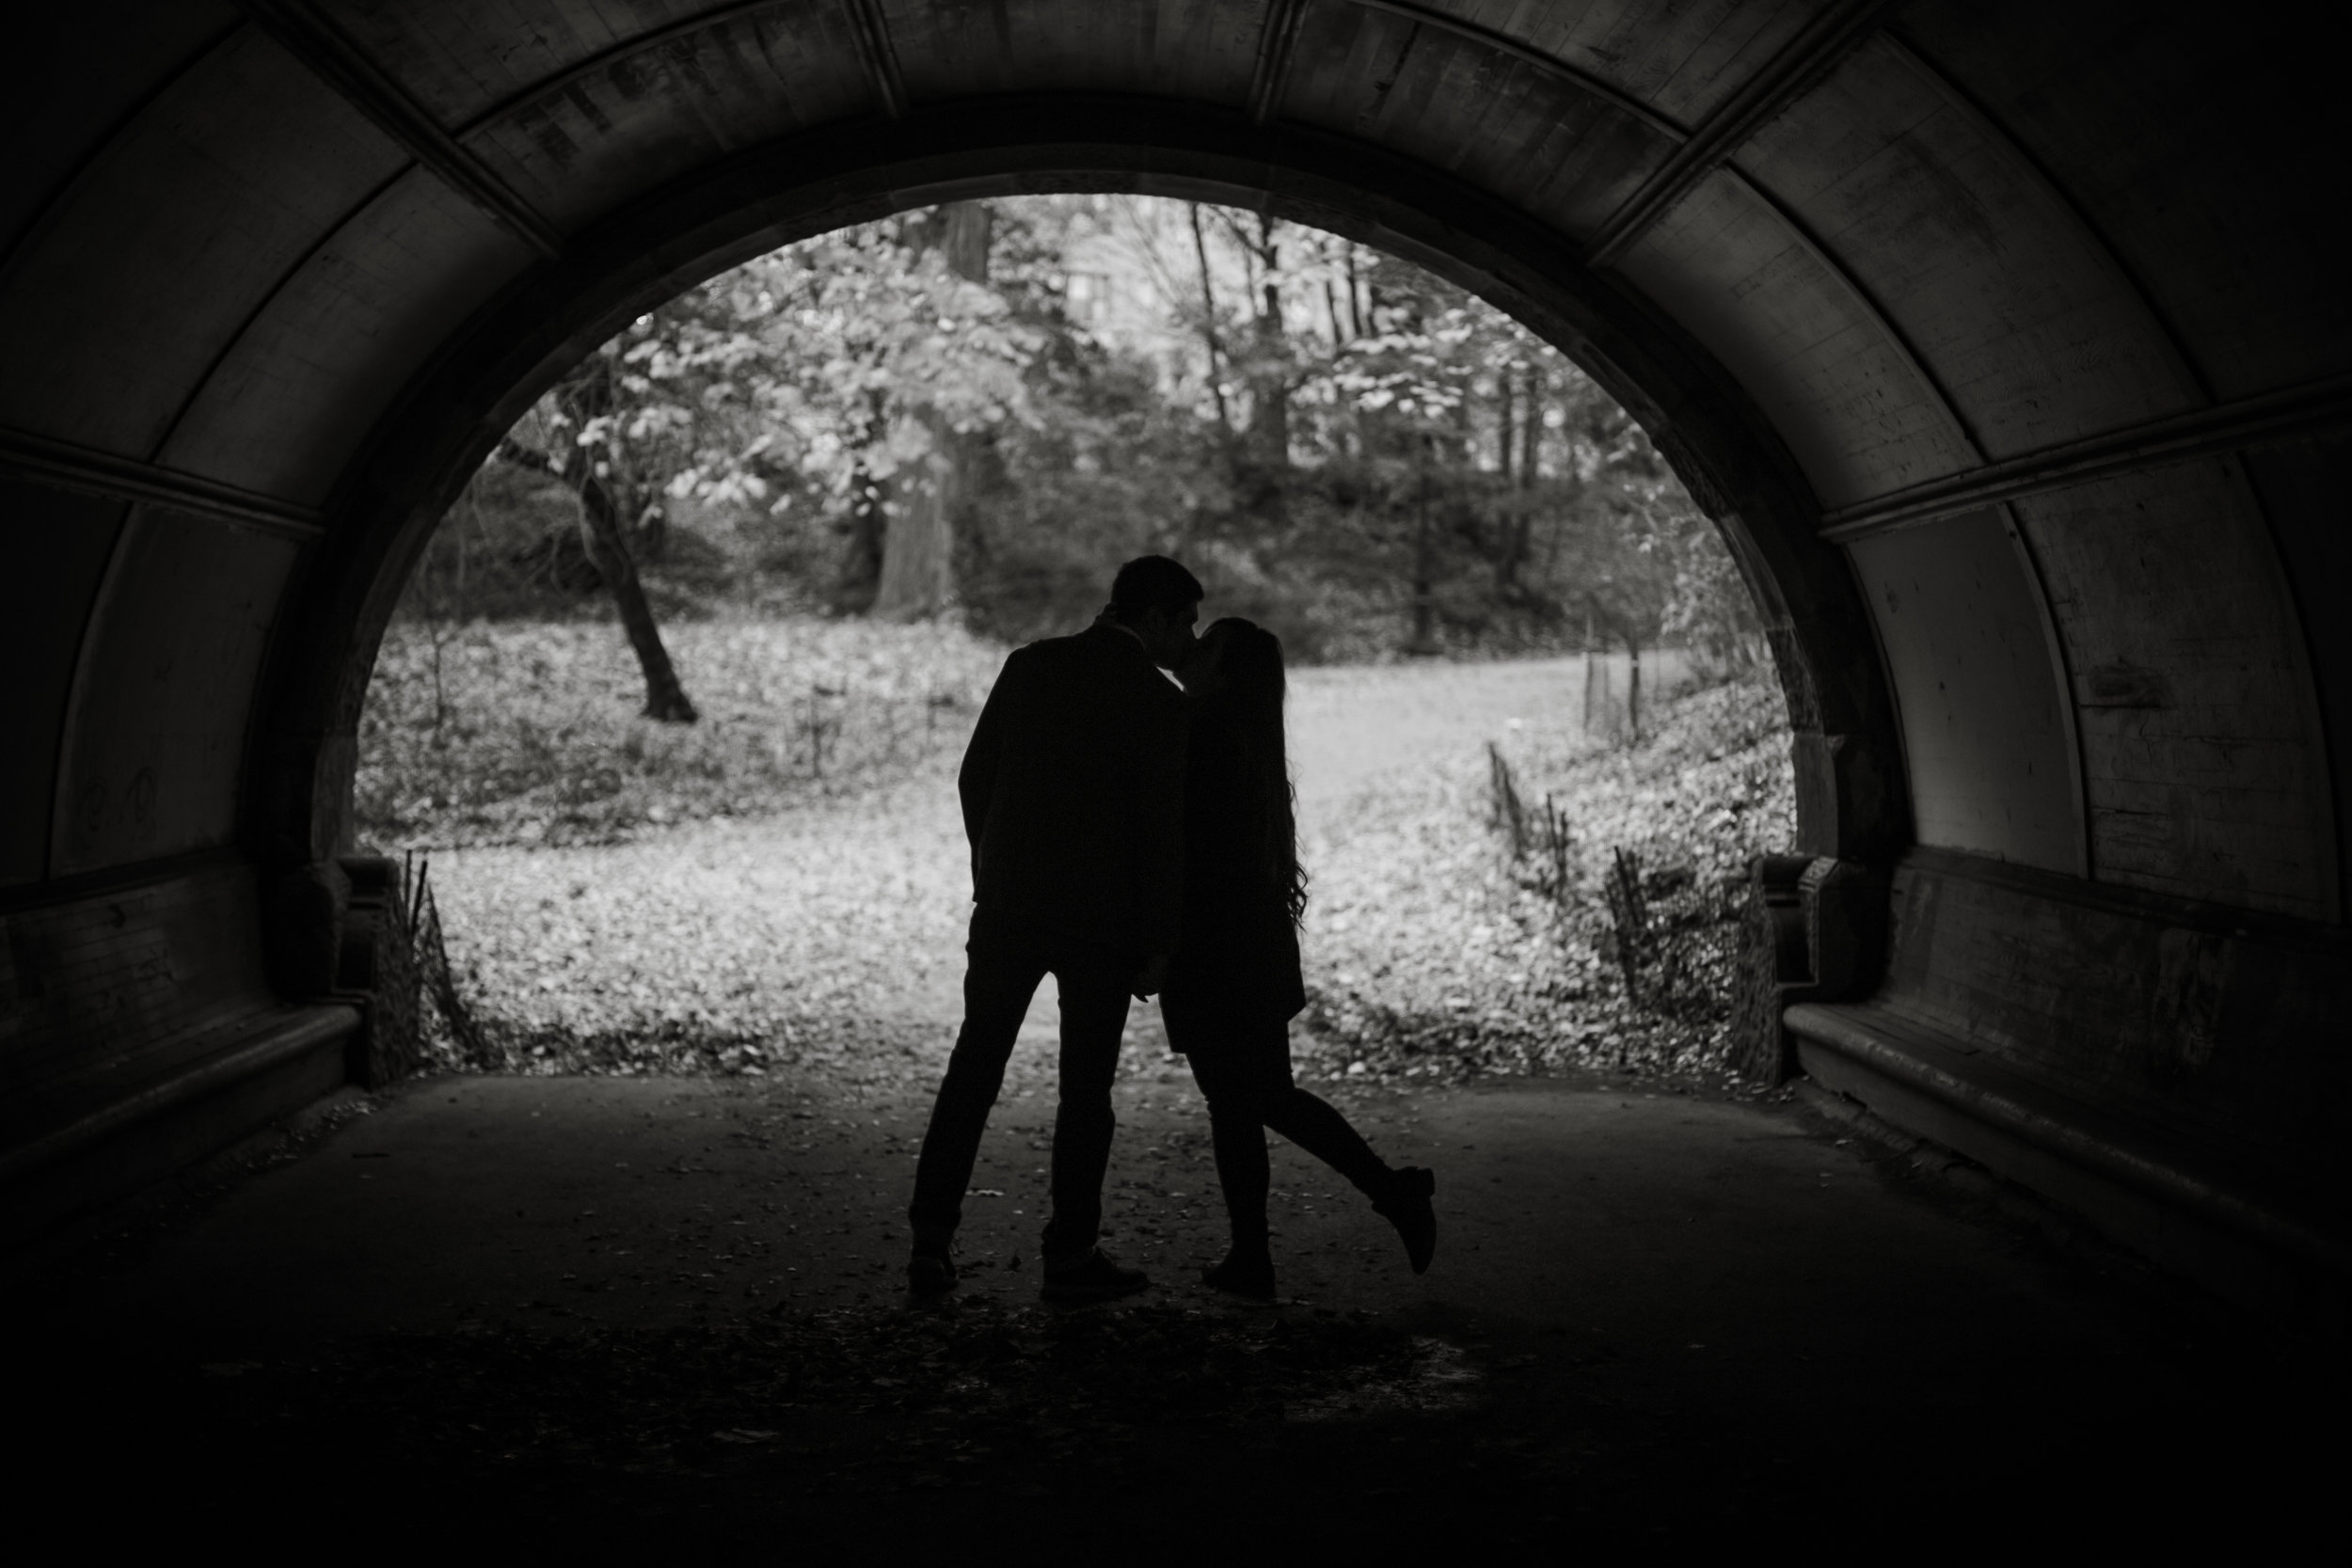 Kate-Alison-Photography-Prospect-Park-Brooklyn-Engagement-Session-Jenna-James-101.jpg